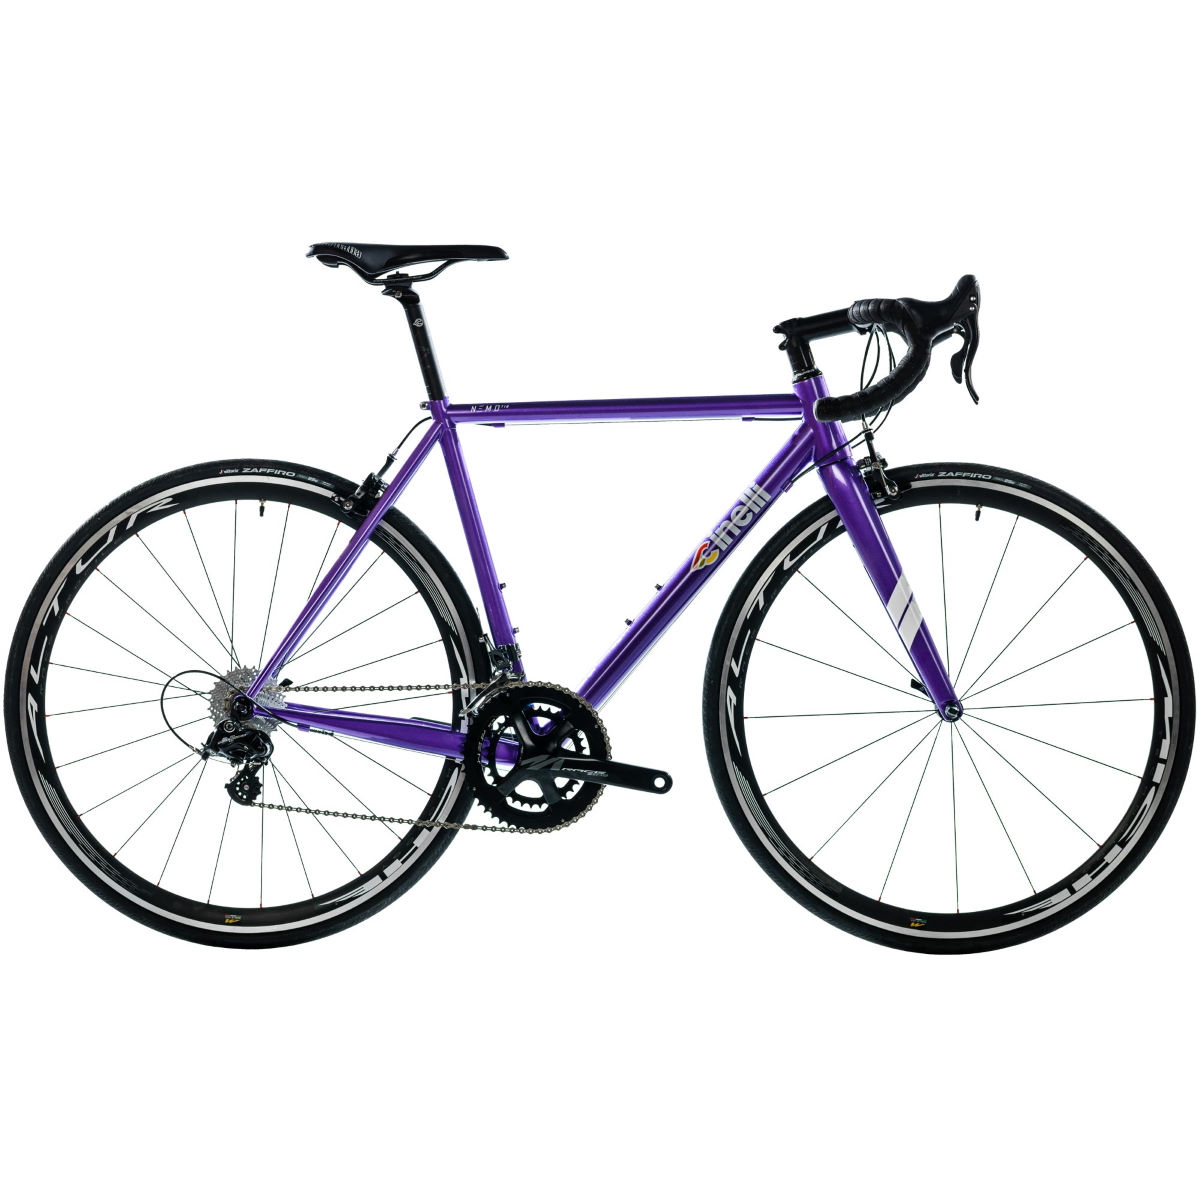 Vélo de route Cinelli Nemo Tig (Potenza, 2017) - XL Stock Bike Mauve